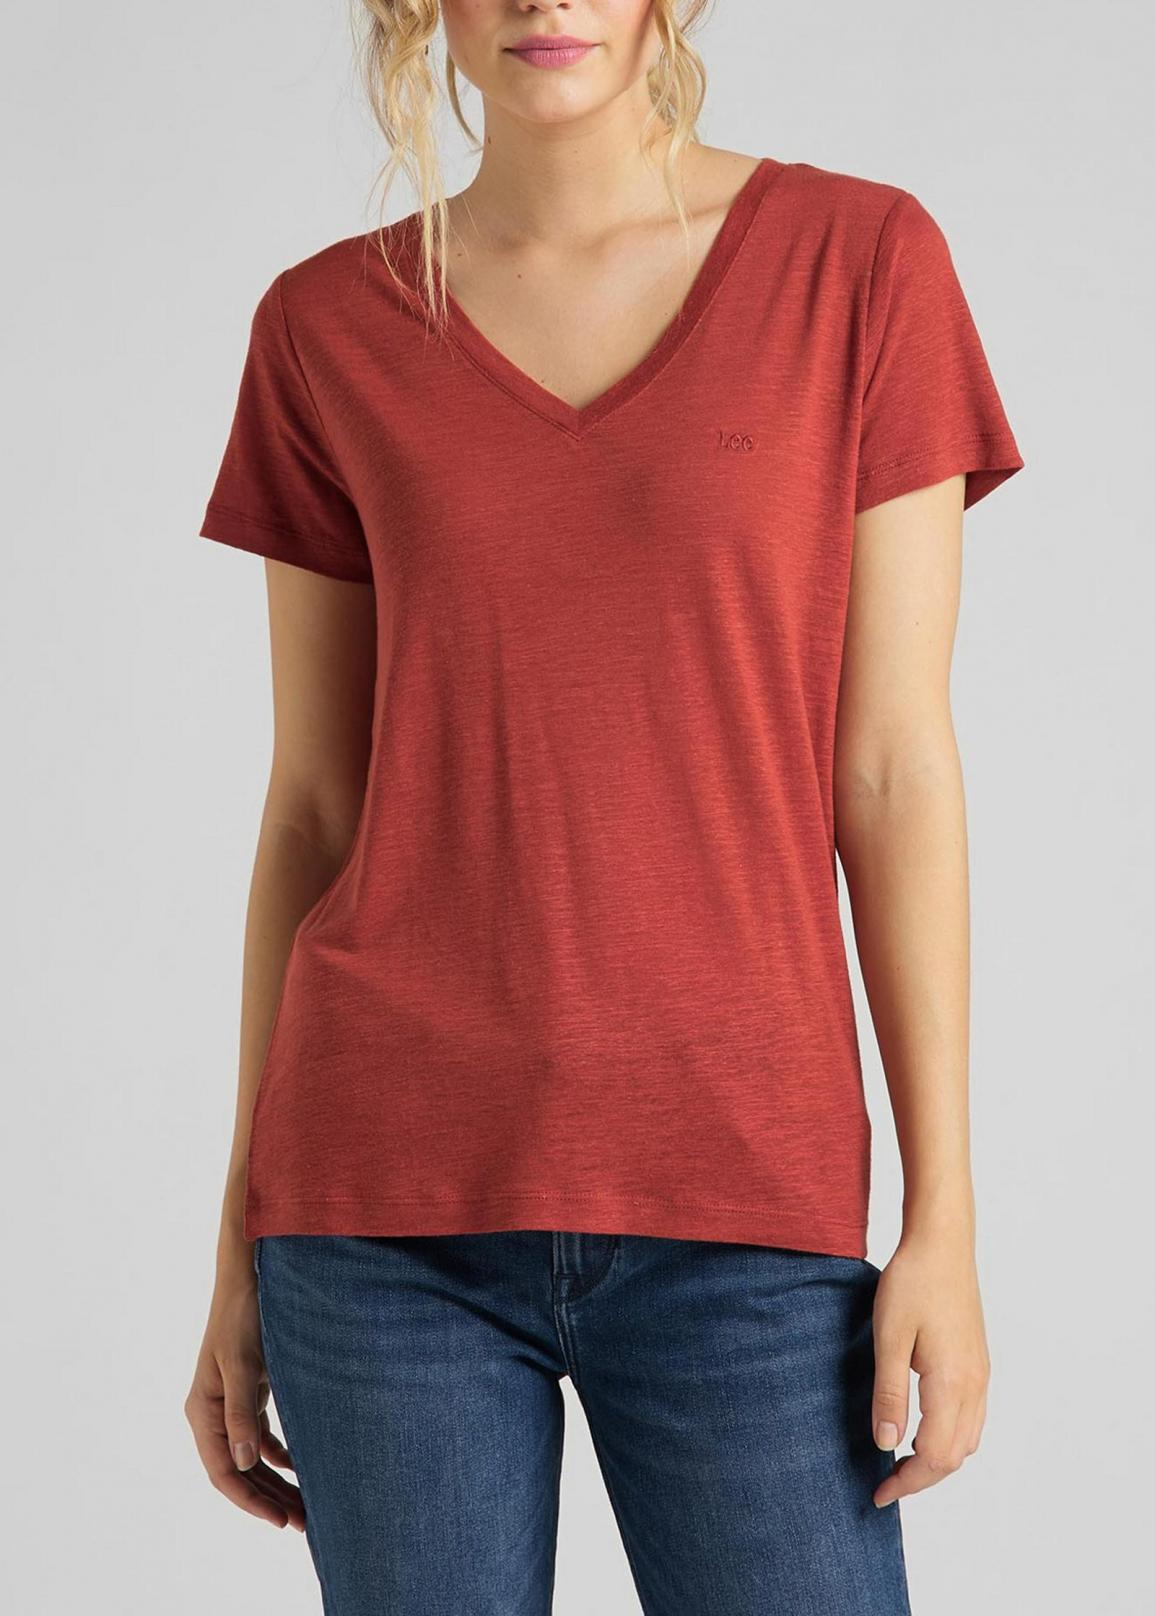 Lee® V Neck Tee - Red Ochre